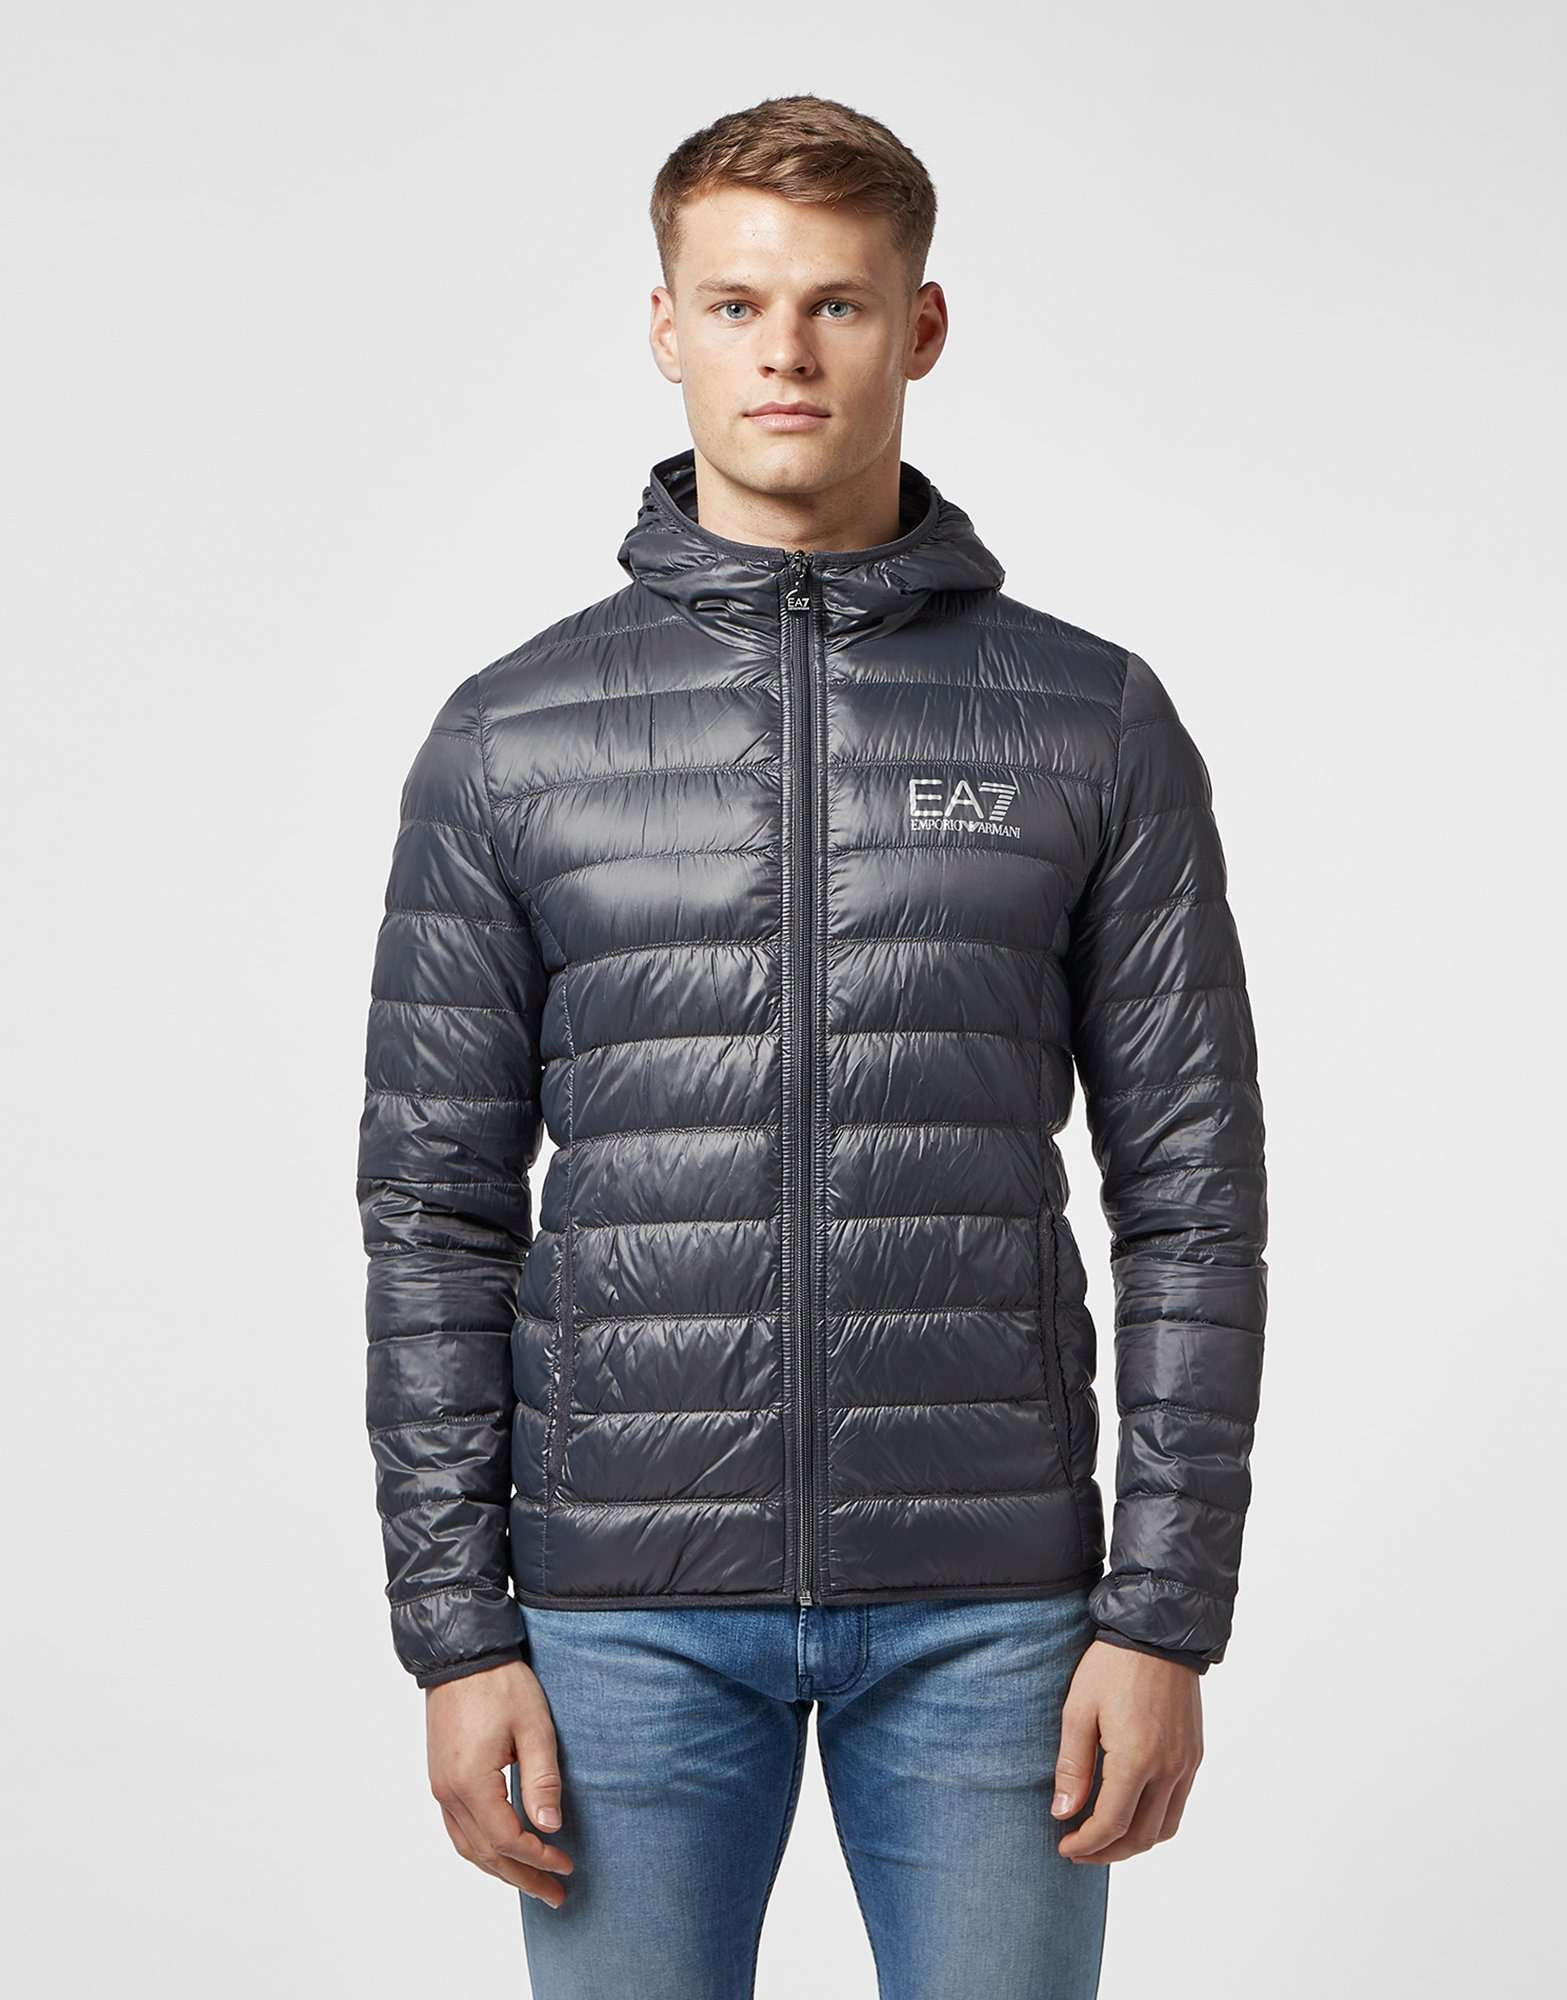 Emporio Armani EA7 Down Padded Bubble Jacket | scotts Menswear